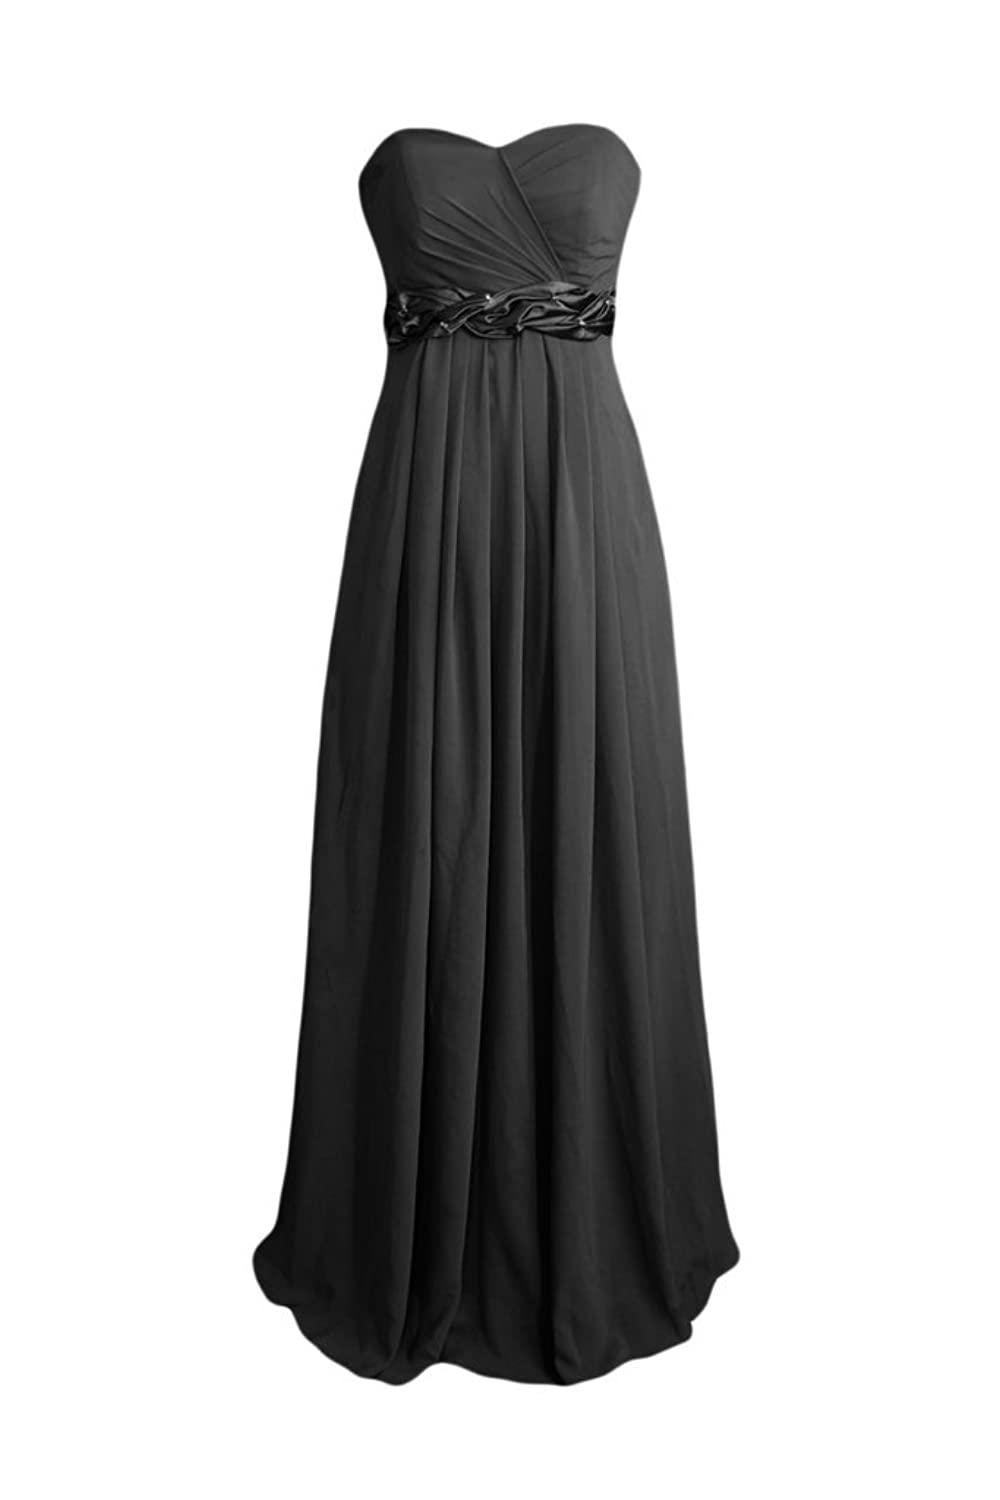 Empire Chiffon Formal Dress Beach Bridesmaids Dress (BM98480)